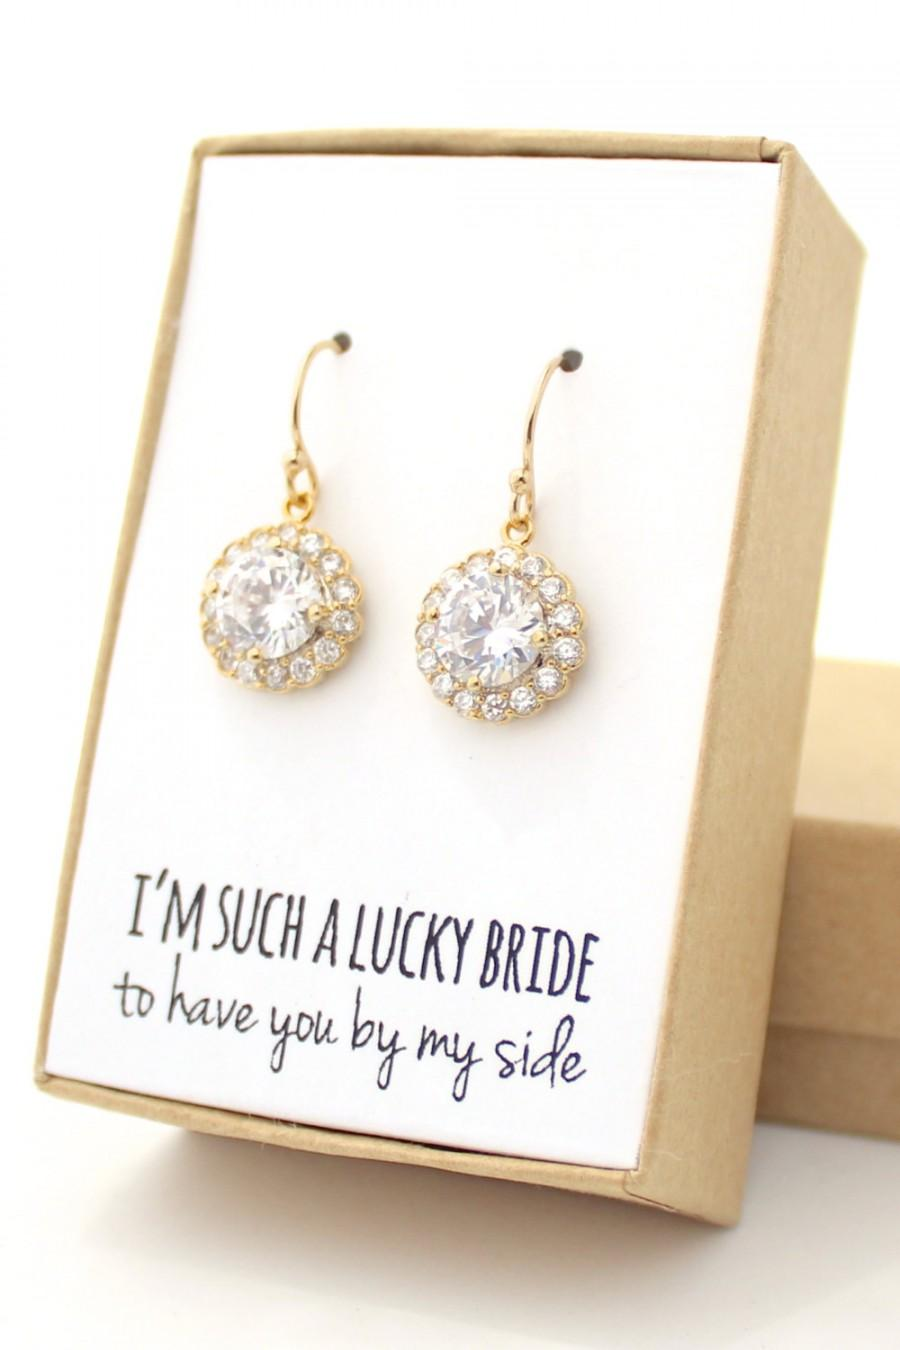 Hochzeit - Clear Crystal / Gold Round Cubic Zirconia Earrings With Gold Trim - Clear Crystal Earrings - Gold Bridesmaid Earring-CZ2 - Z10